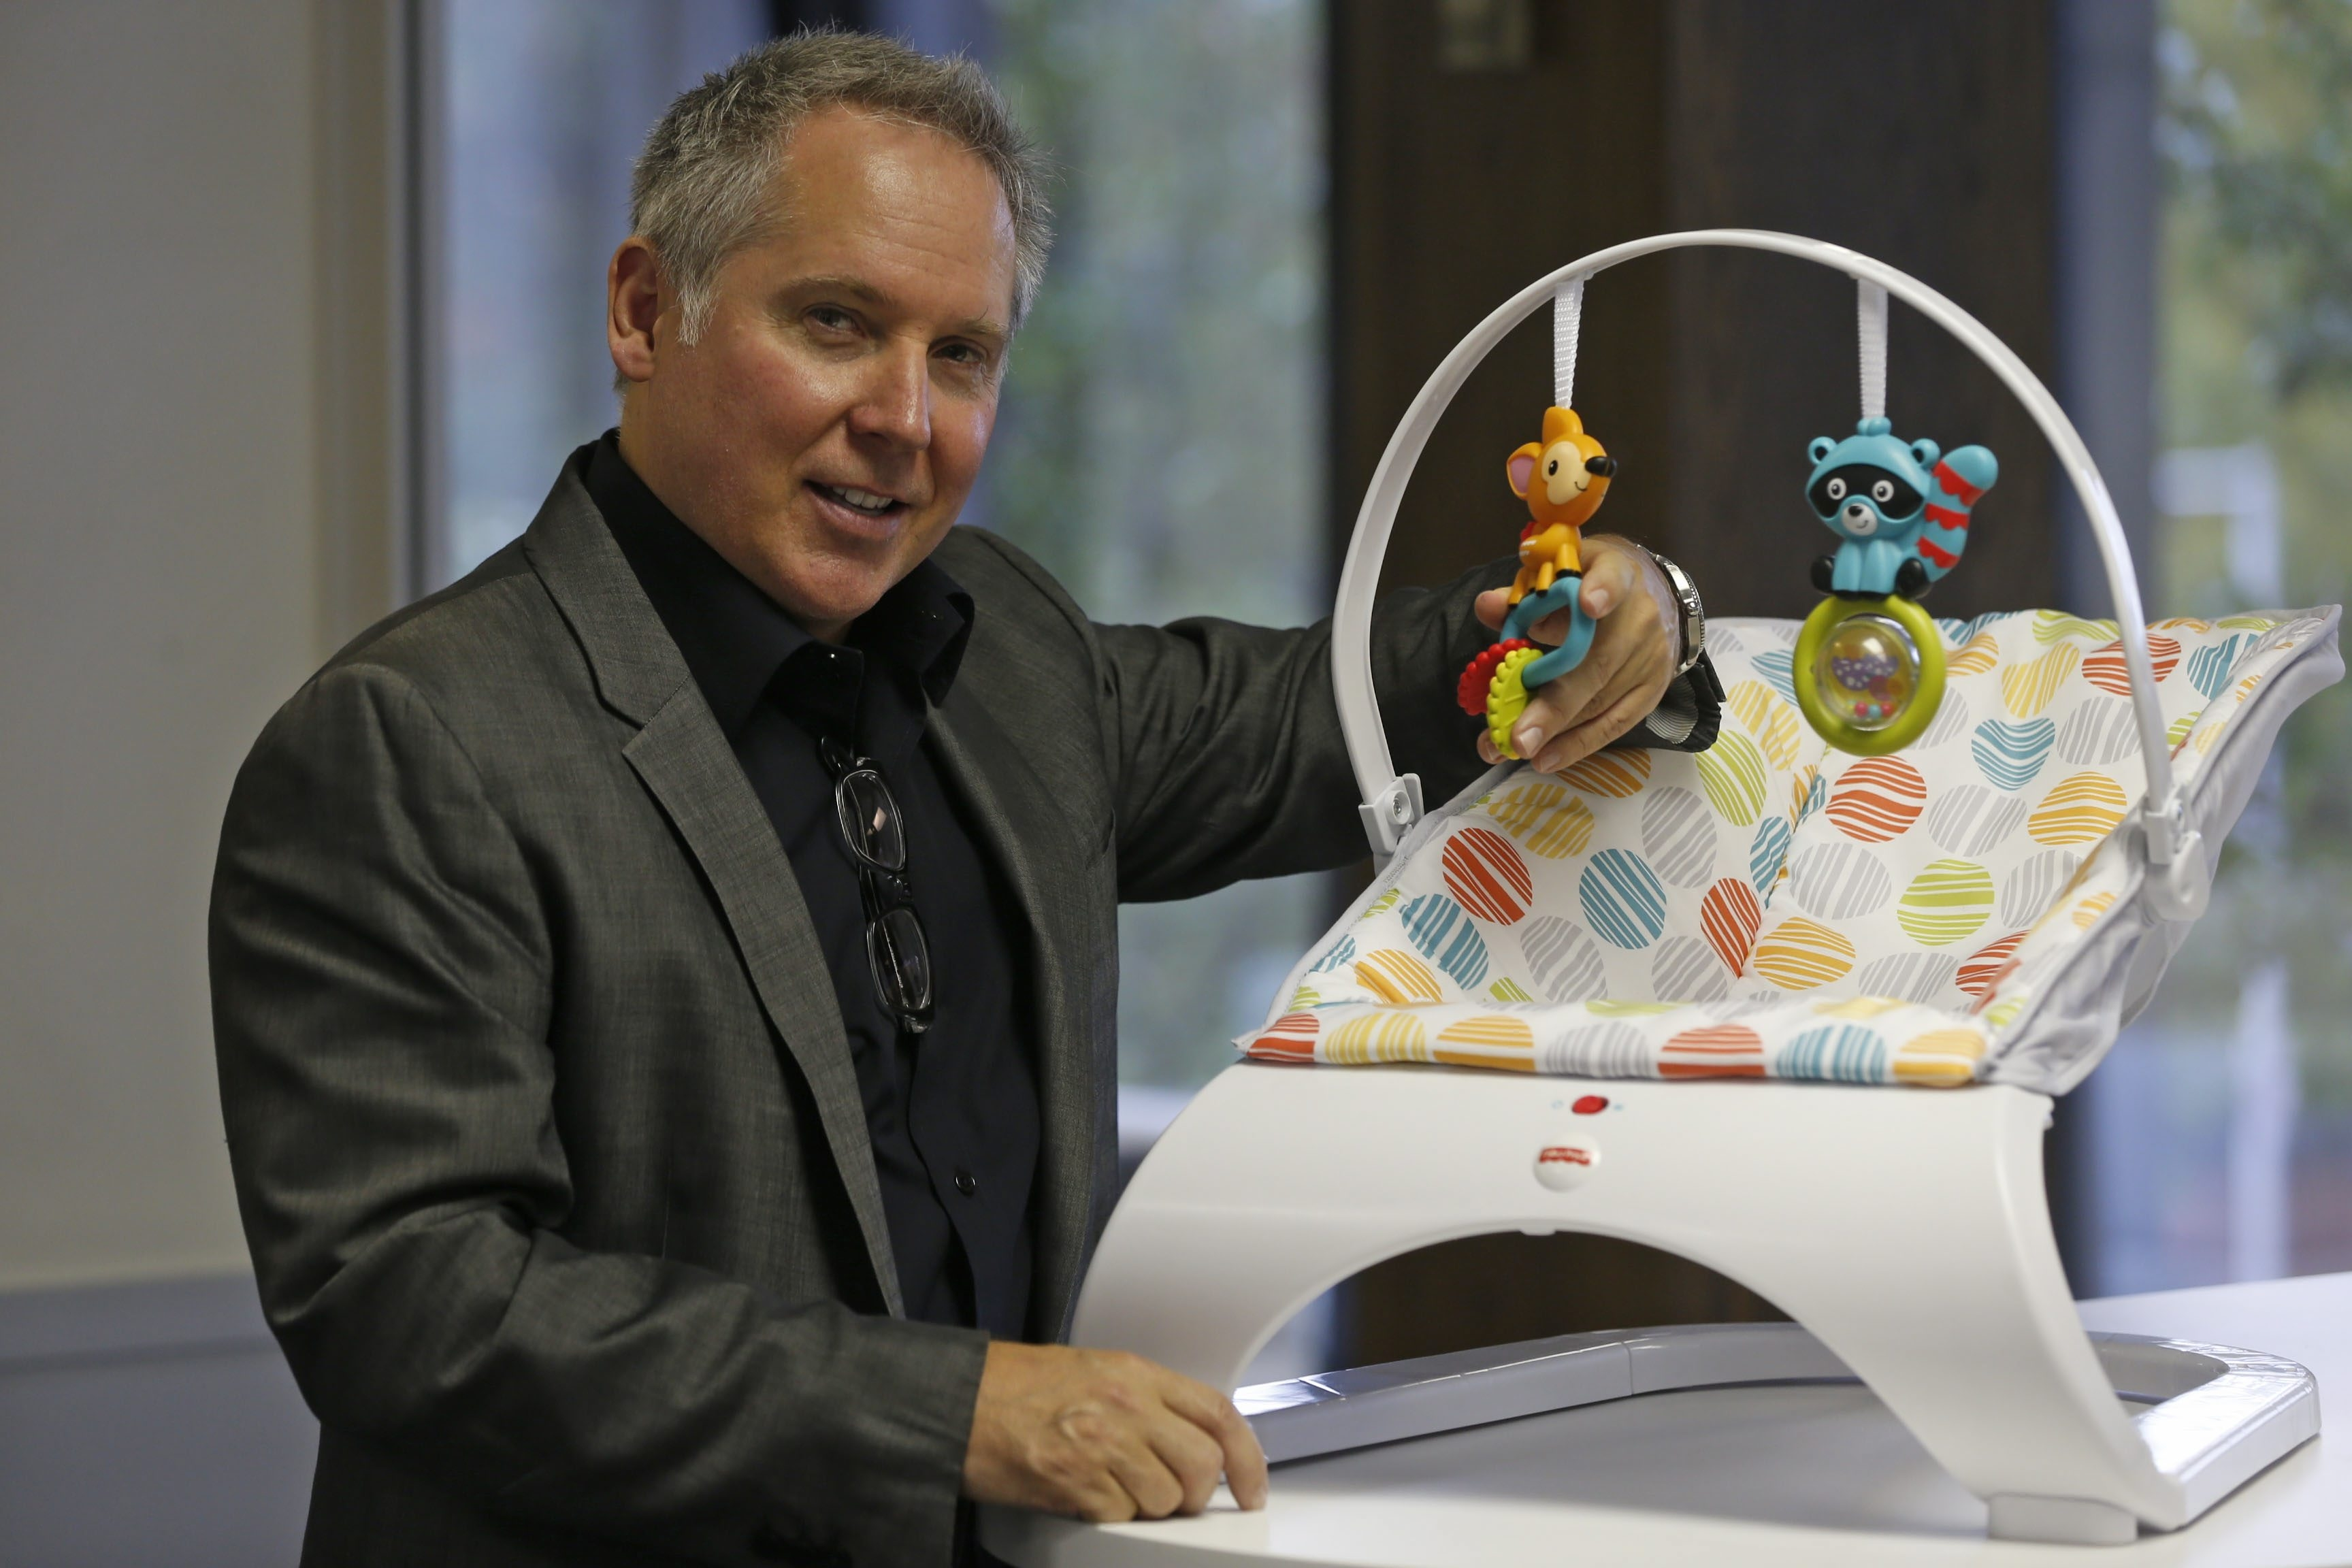 Mark Zeller, senior vice president of design at Fisher-Price, said some toys must fit in with a home's decor.